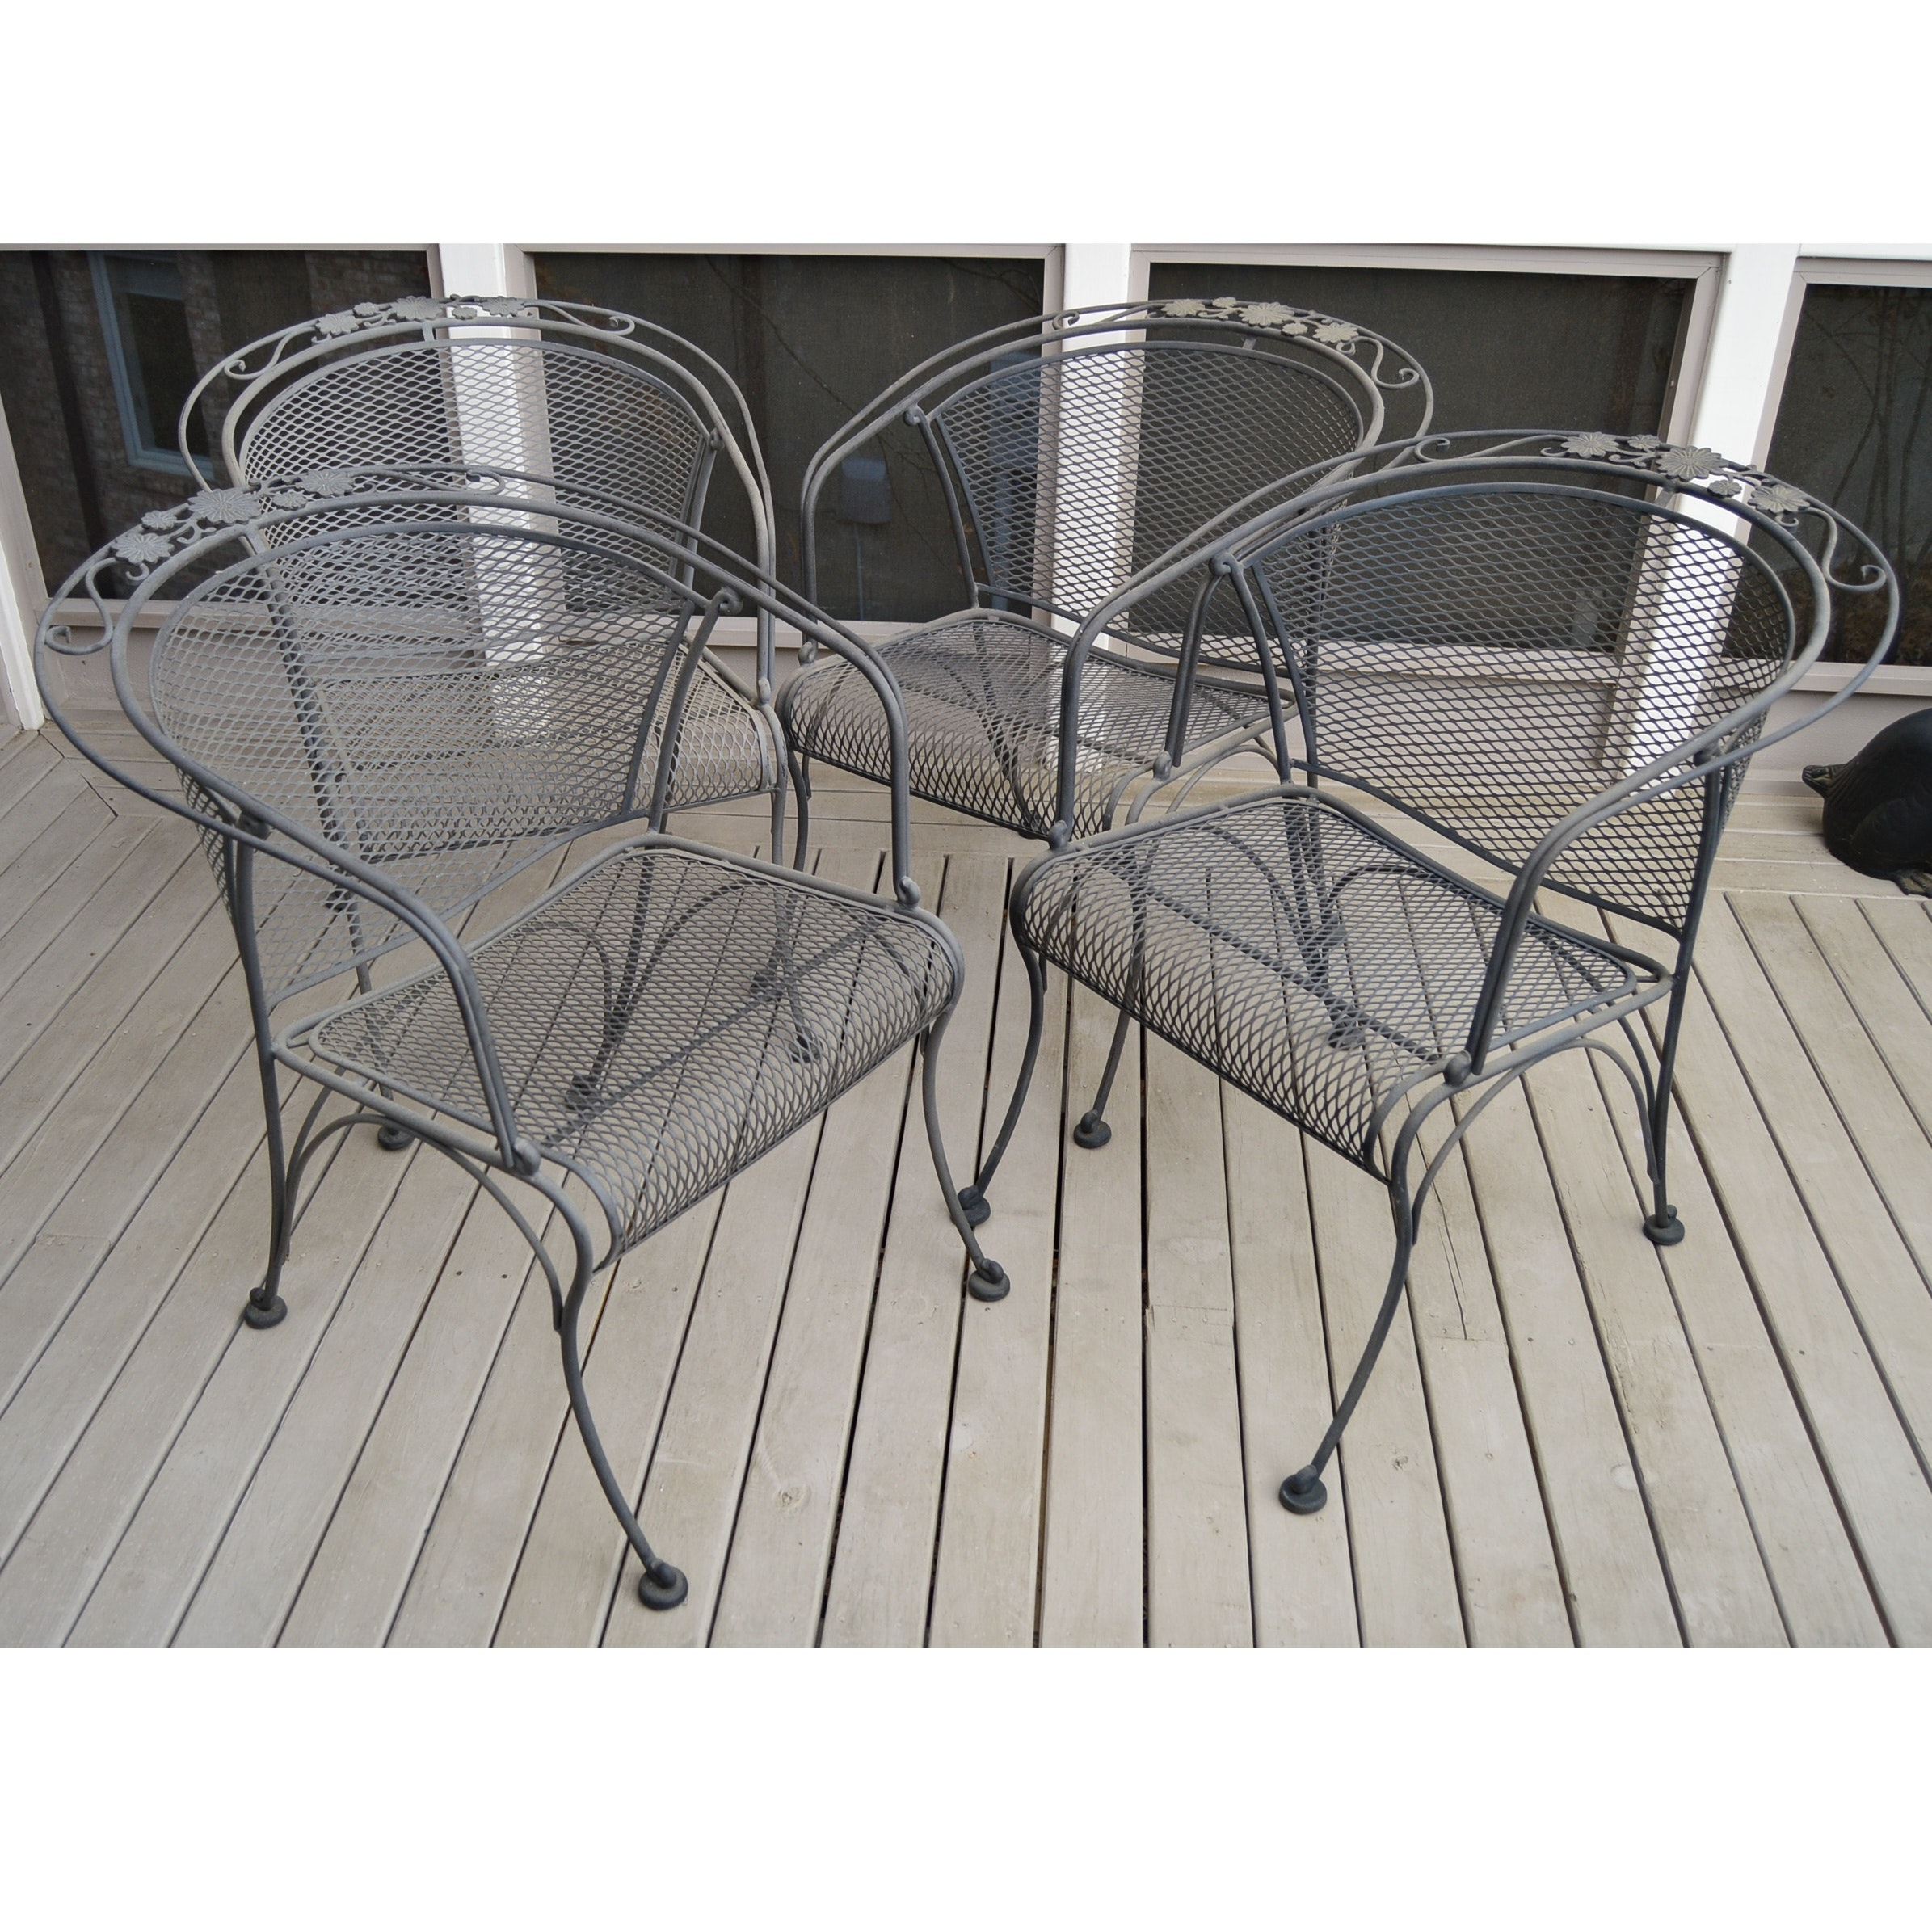 Set of Wrought Iron Outdoor Chairs